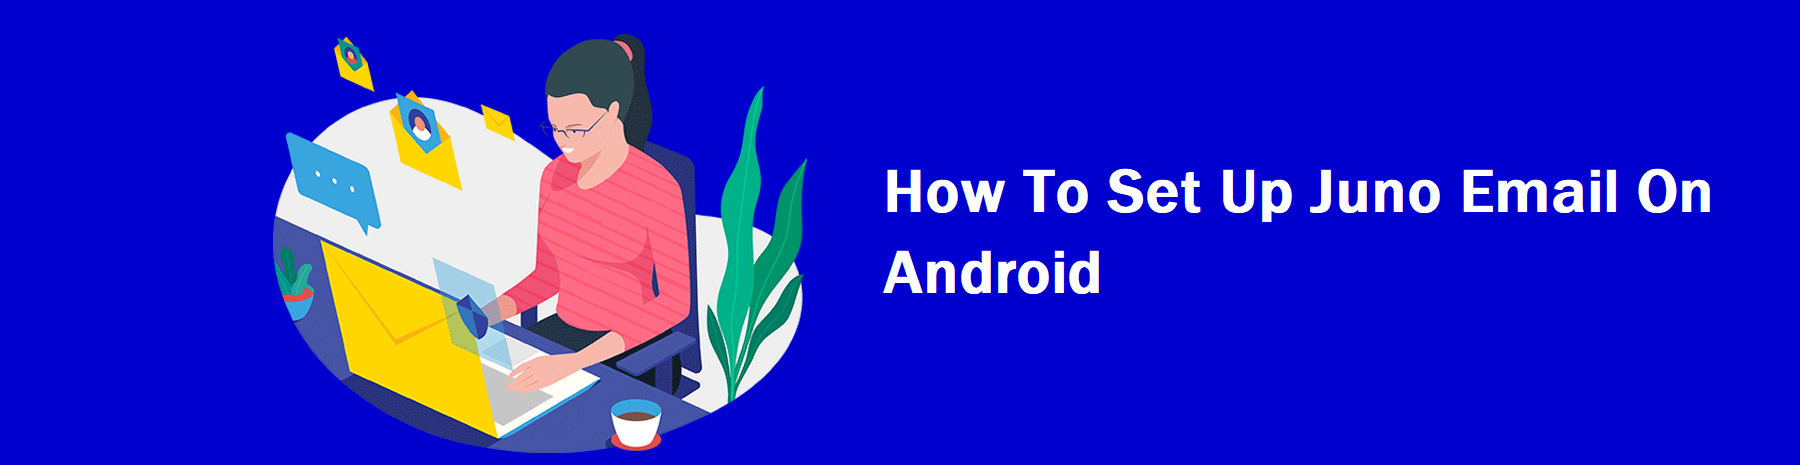 How To Set Up Juno Email On Android,